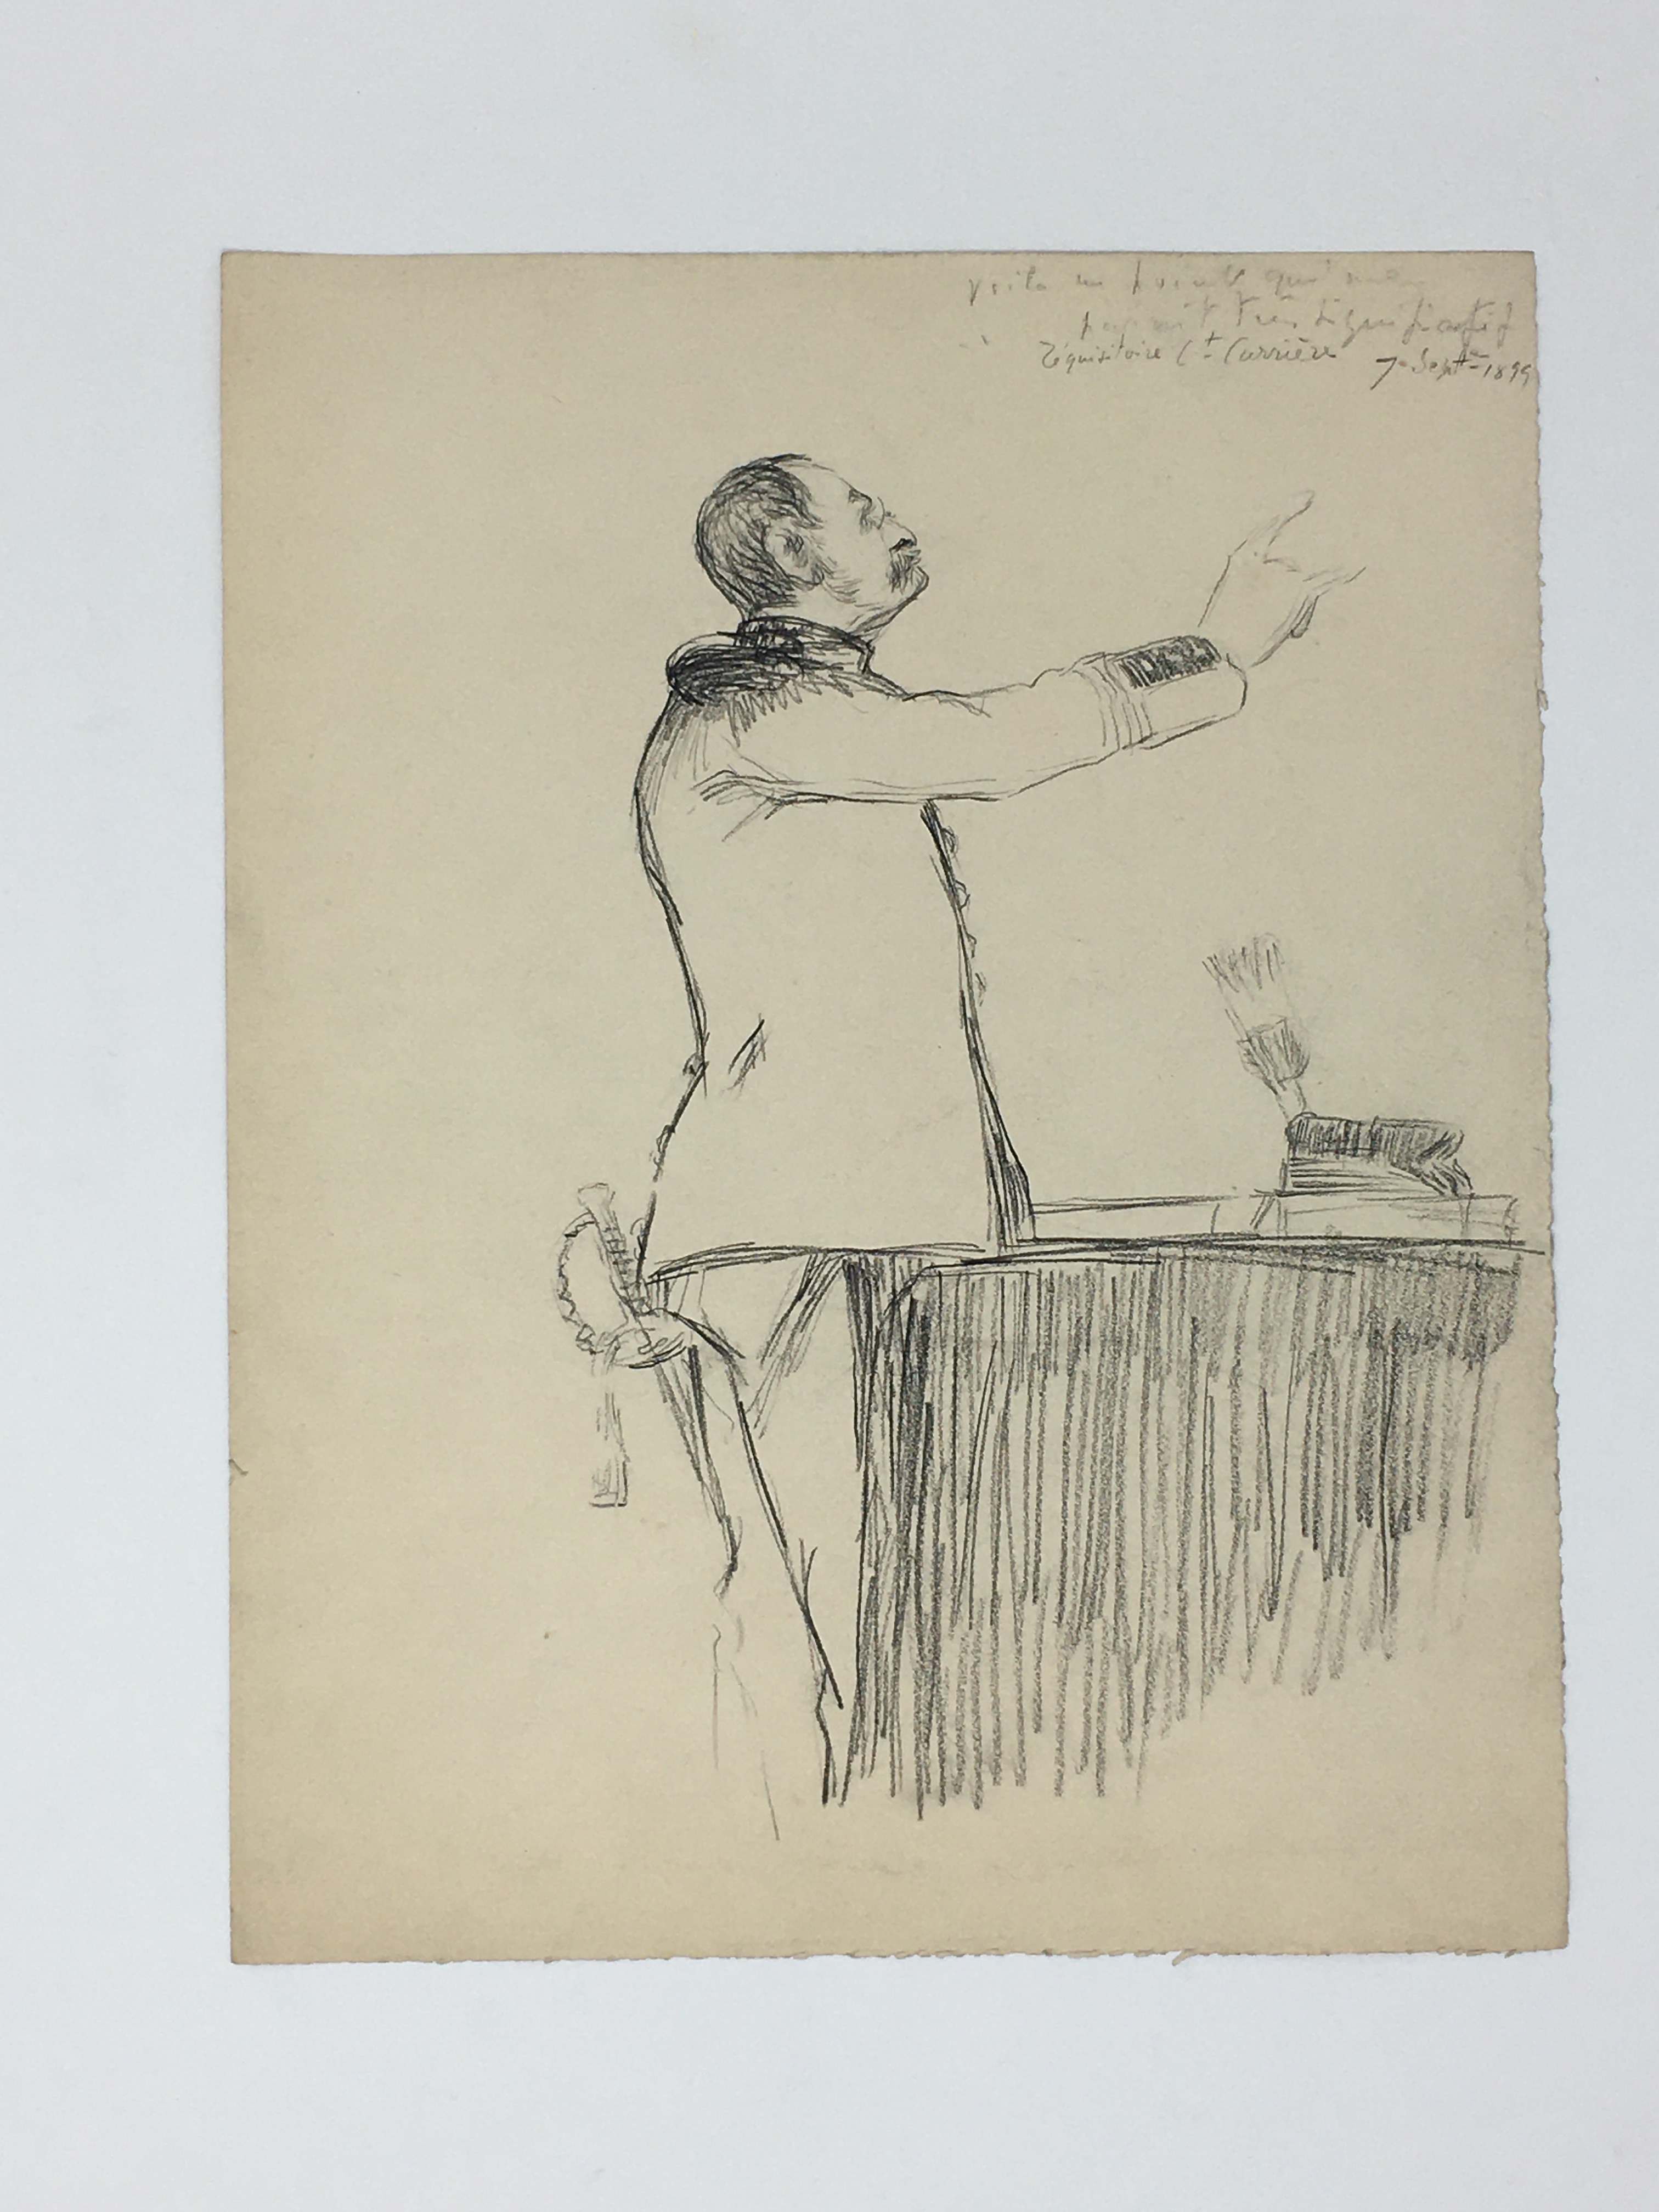 J'Accuse Newspaper, Emile Zola Quote, Signed Dreyfus Portrait, Rare Trial Drawings & Schwartzkoppen - Image 53 of 74